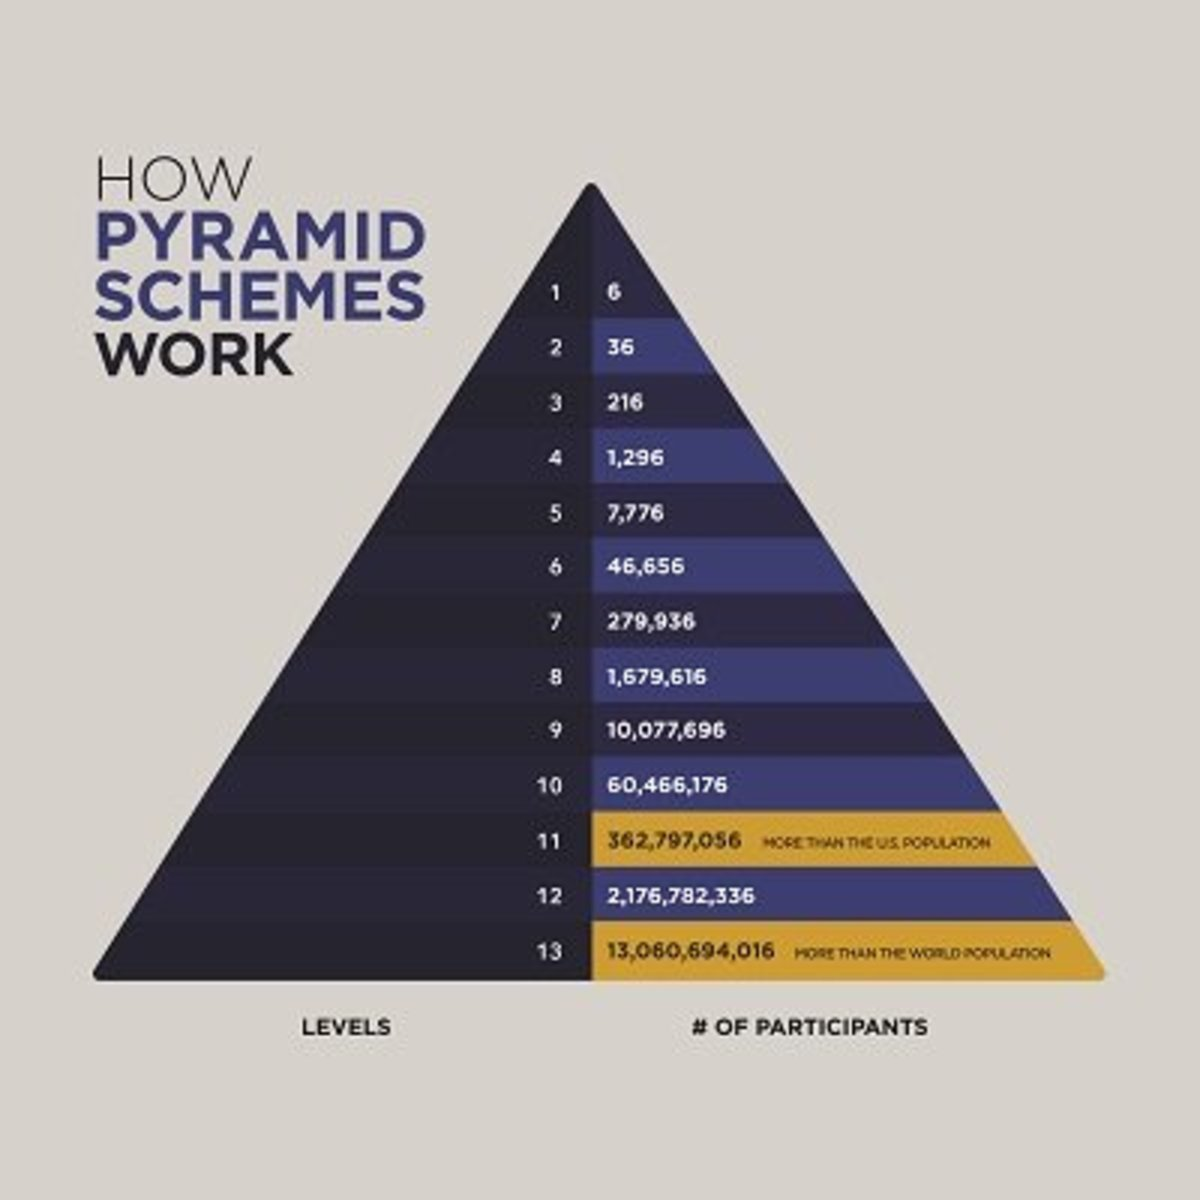 The New Pyramid Scheme: Smart Circle Under Different Names